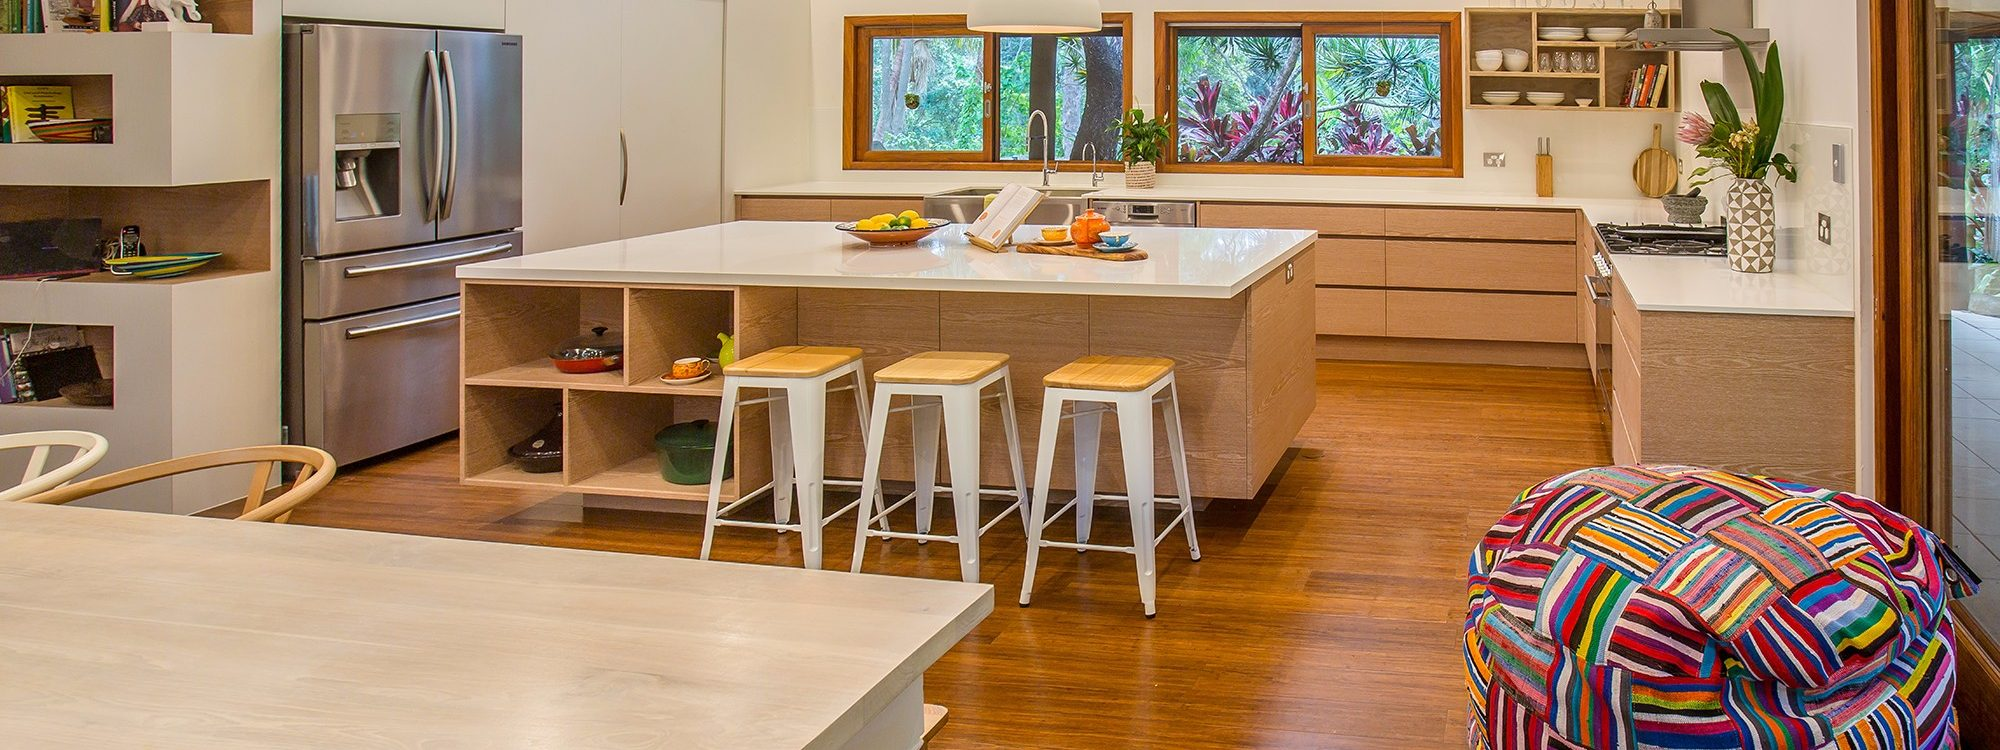 Apalie Retreat - Ewingsdale - Kitchen and dining room